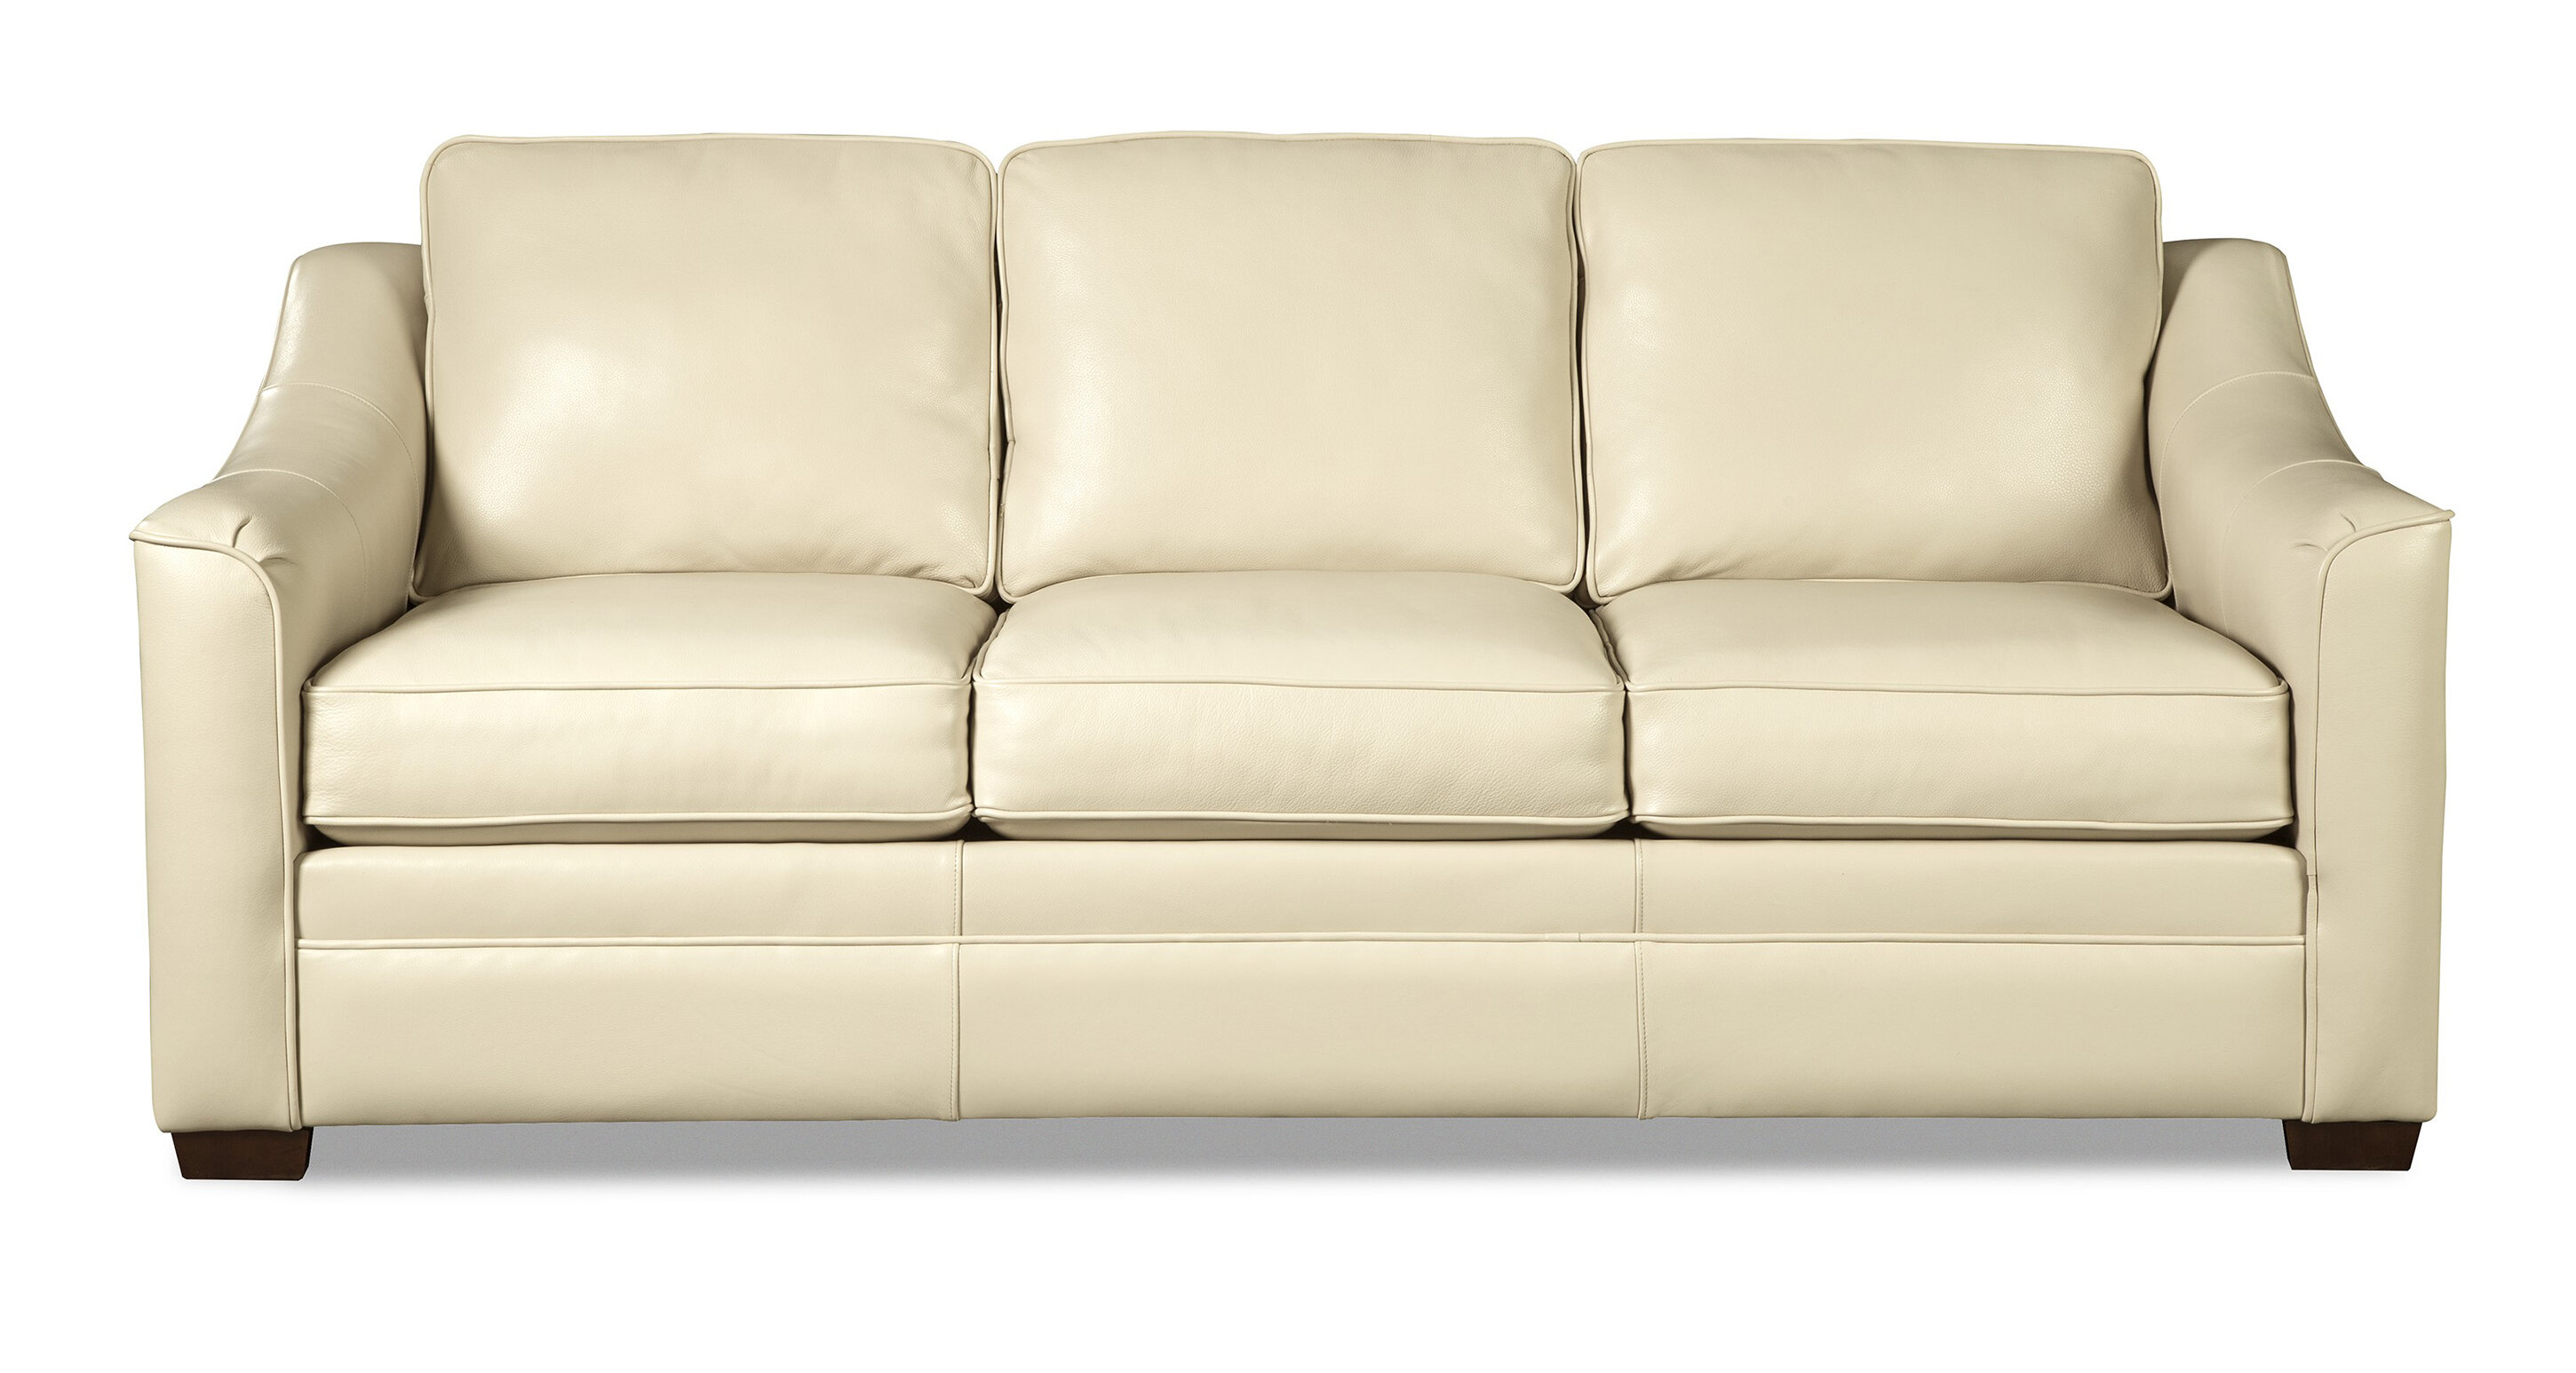 westland and birch pearce leather sofa bed inlv1369 piid=